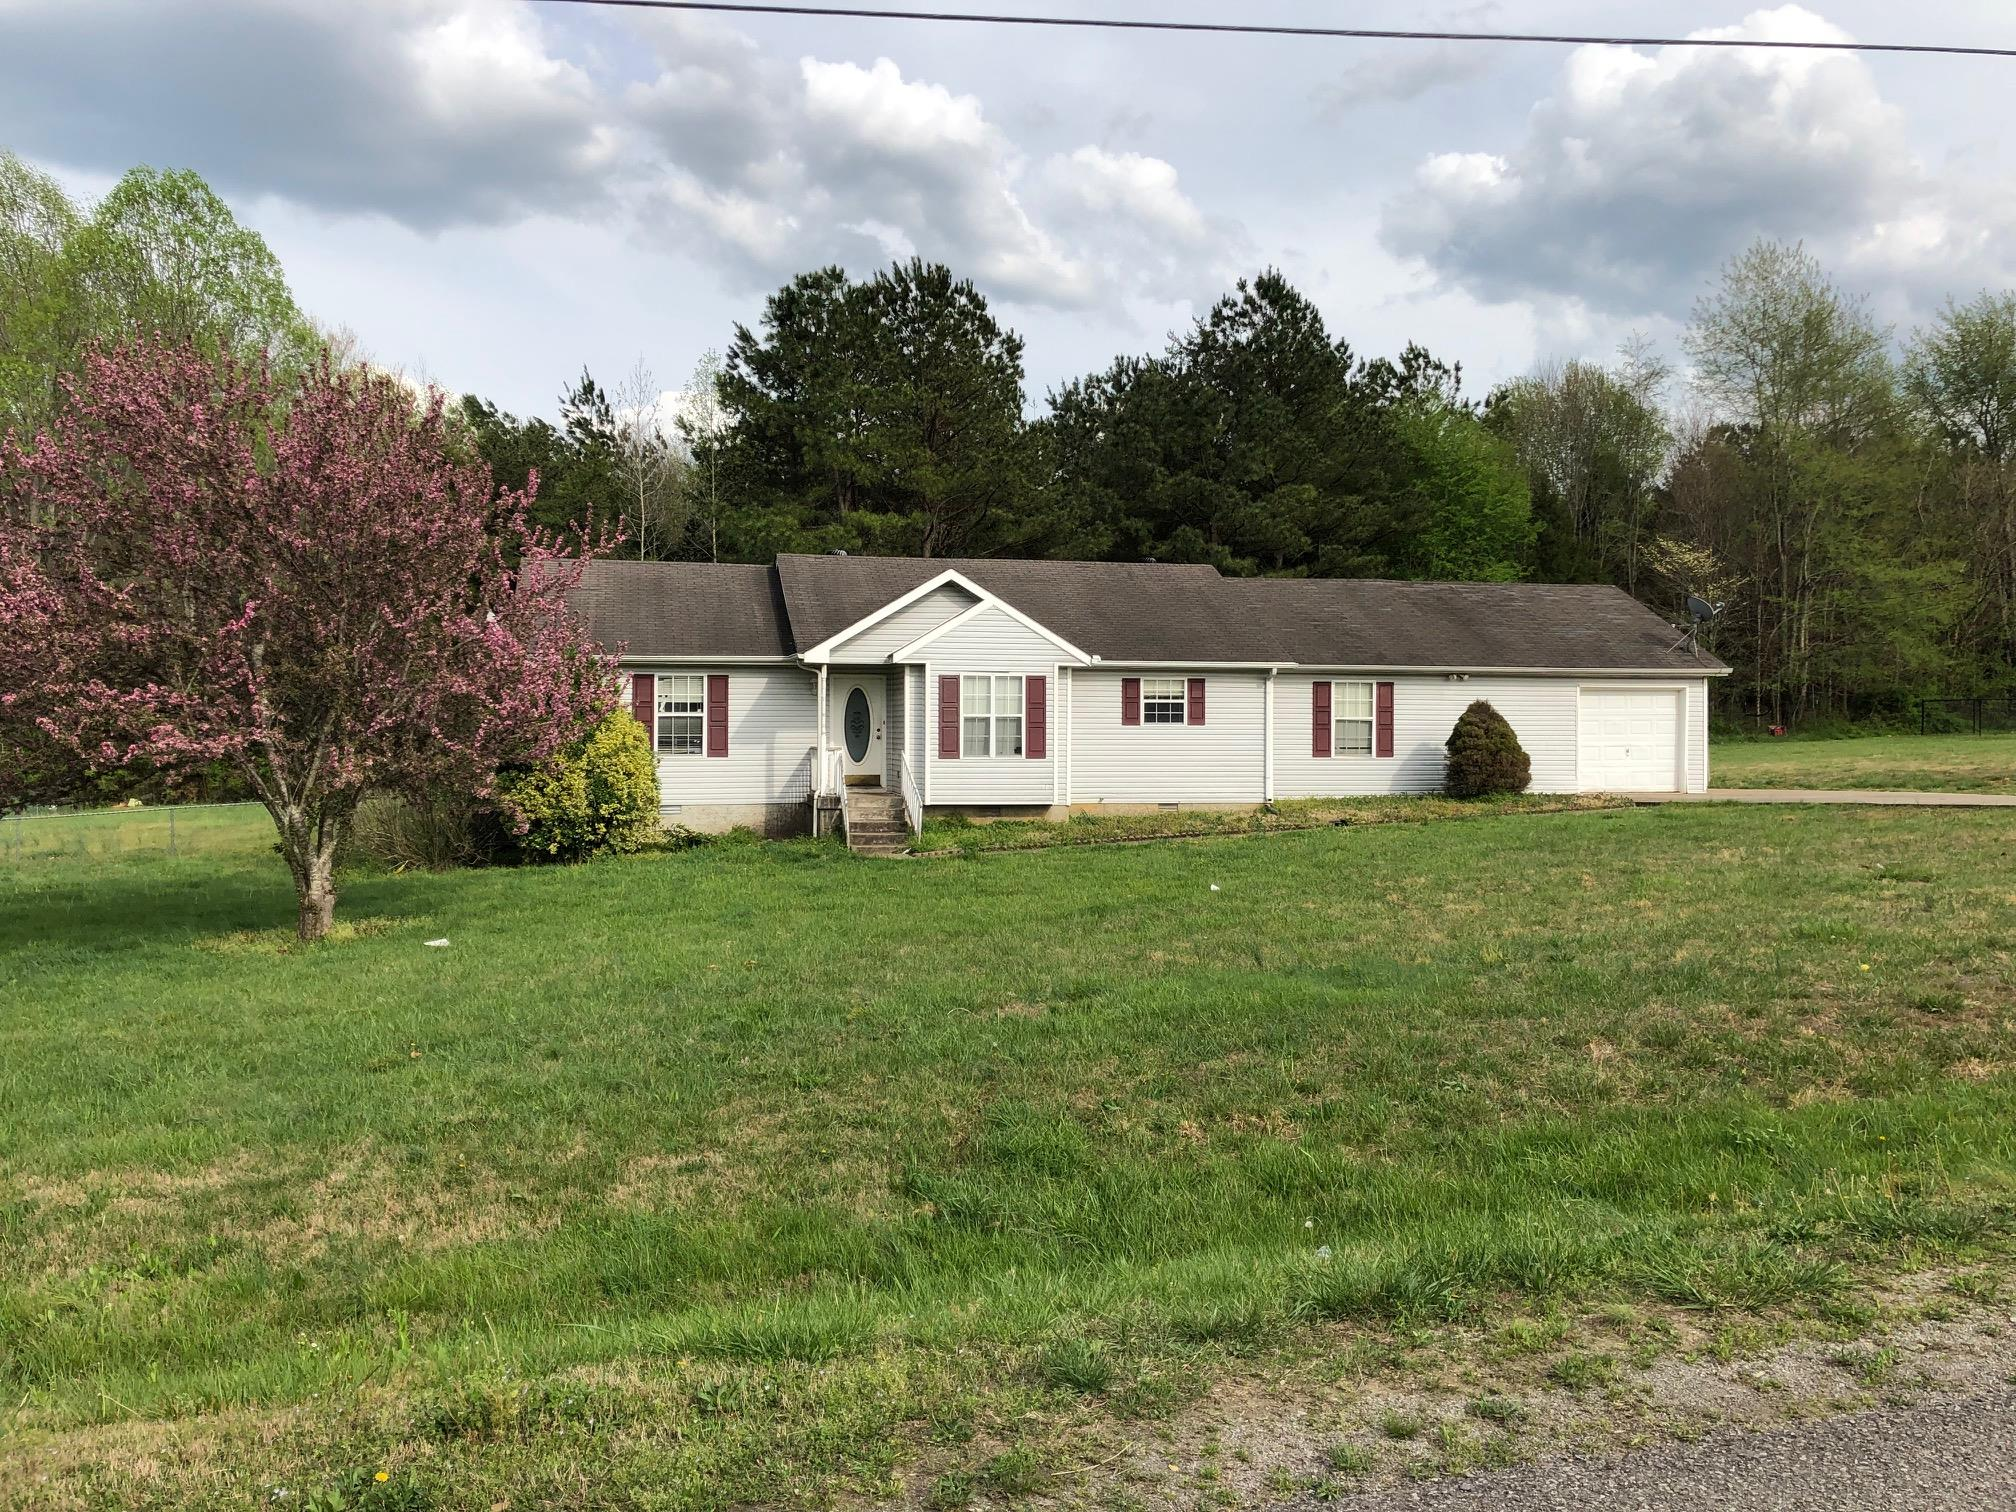 1006 Golden Pond Road, Chapmansboro, TN 37035 - Chapmansboro, TN real estate listing